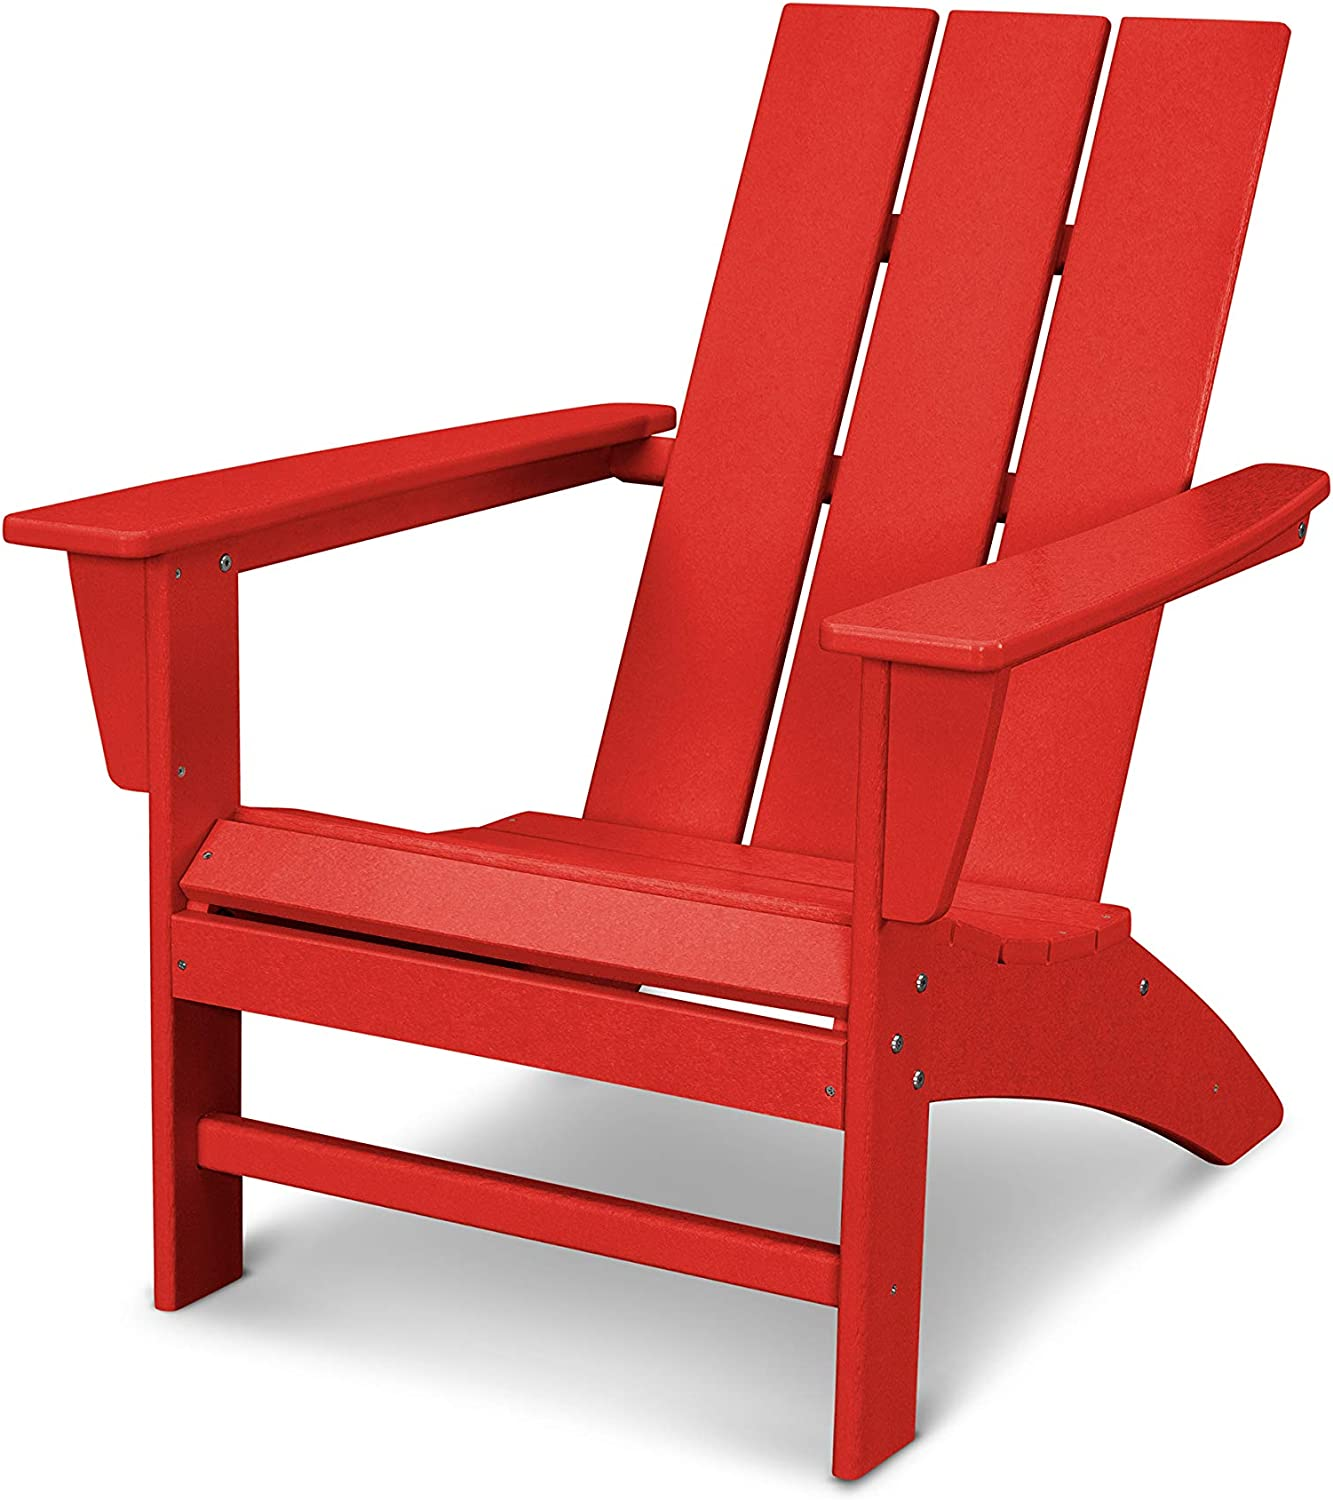 POLYWOOD AD420SR Modern Adirondack Chair, Sunset Red